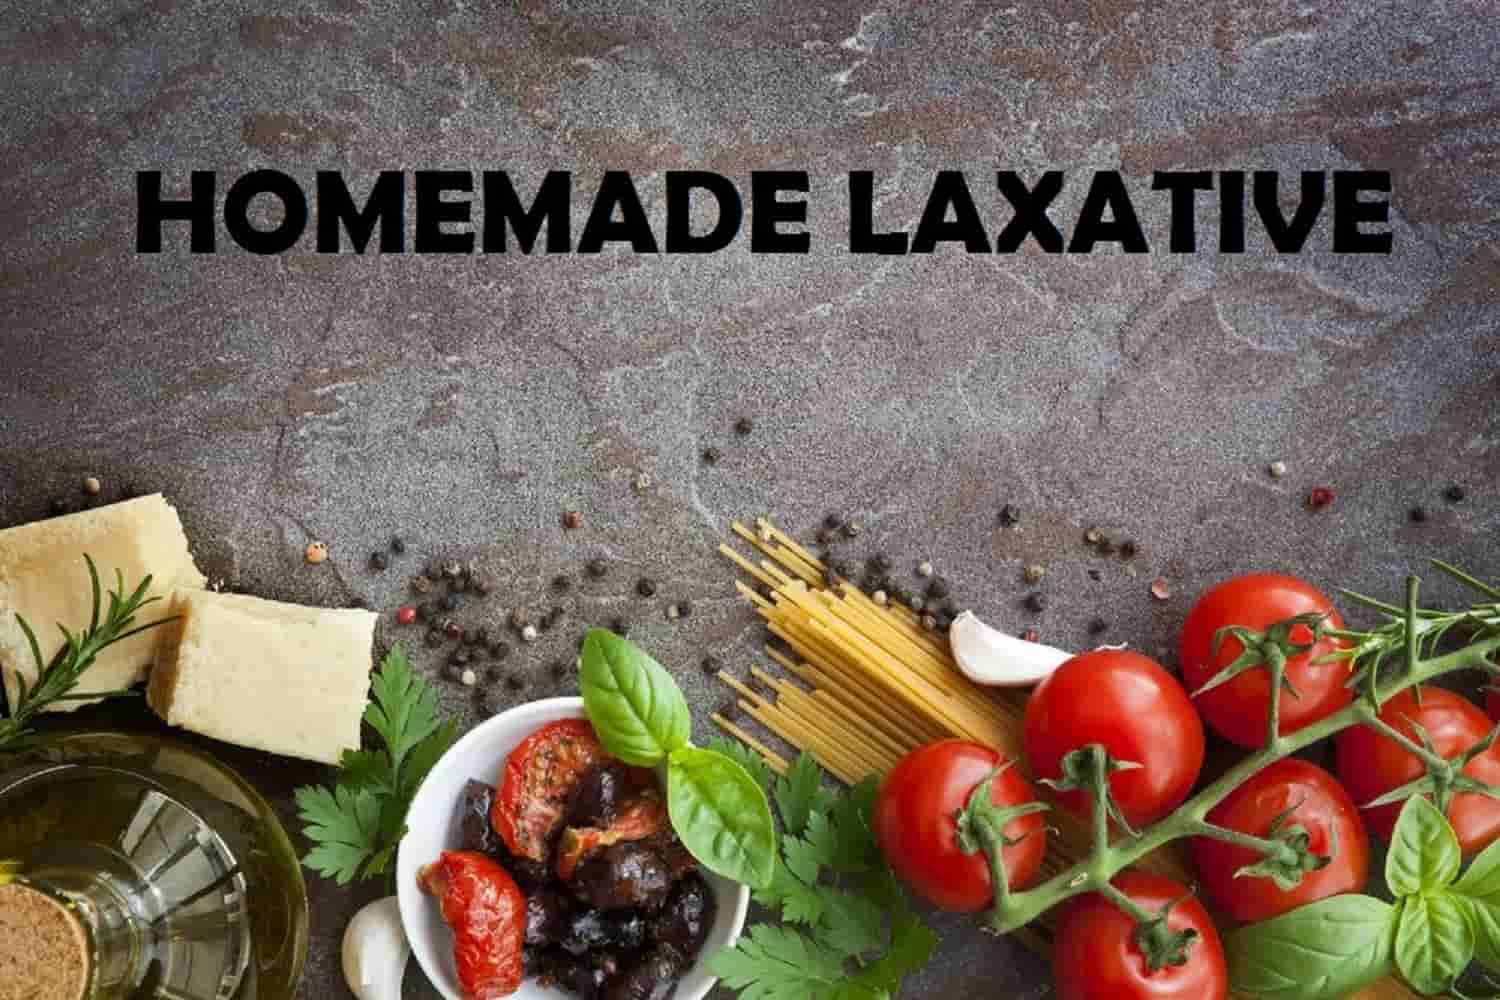 homemade laxative